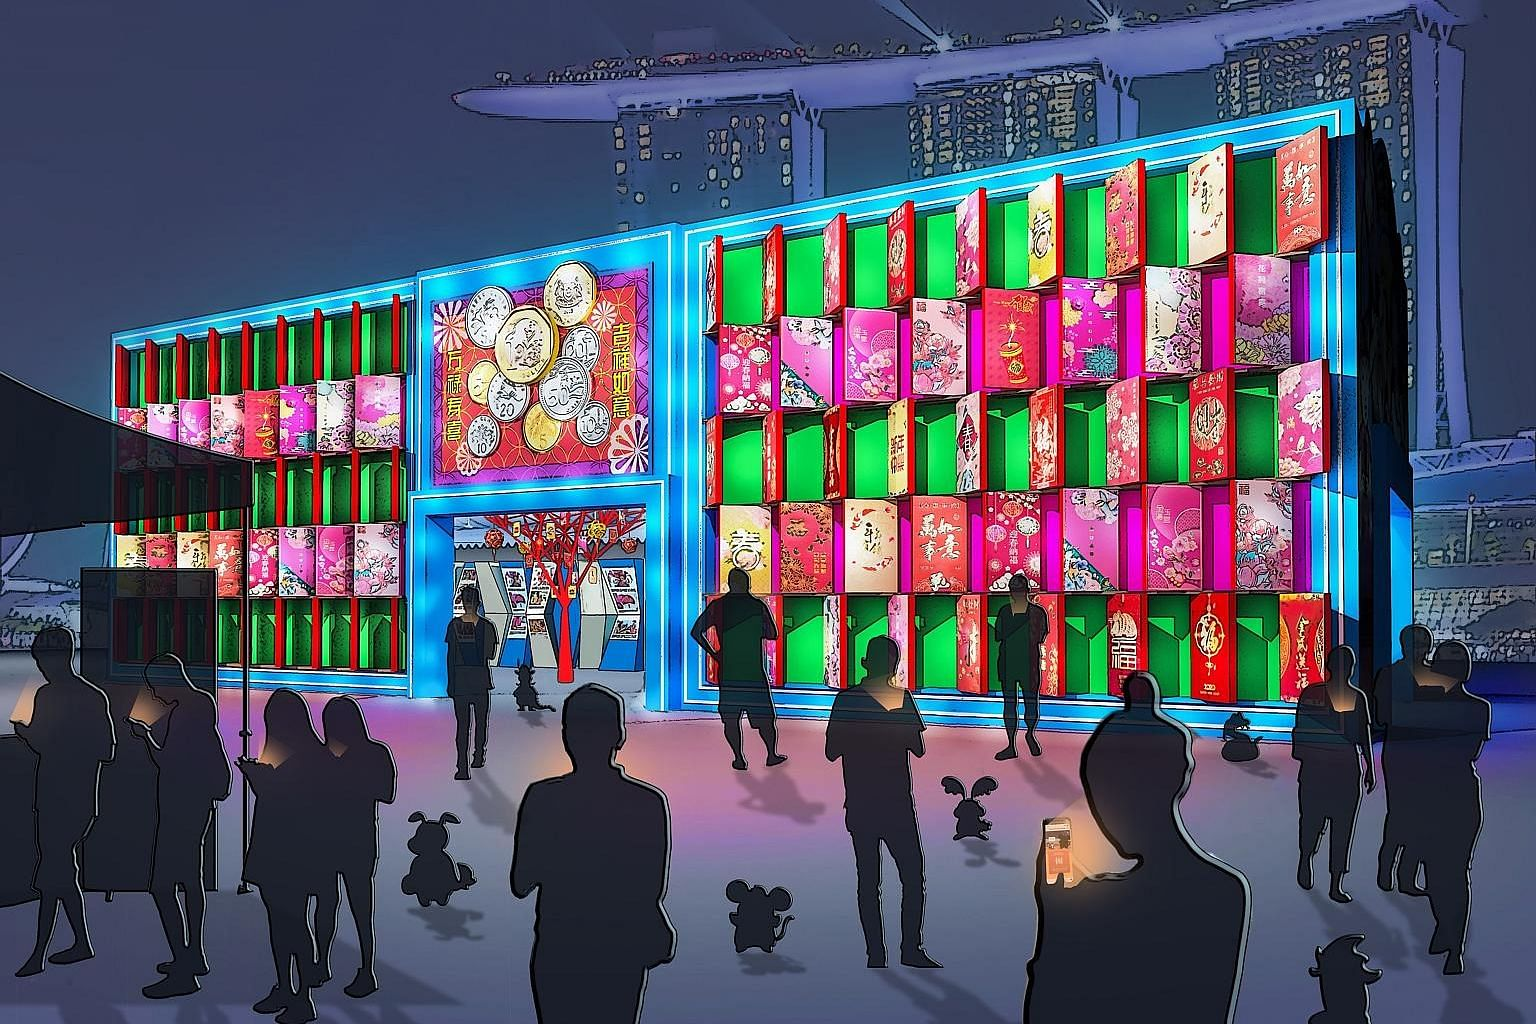 An artist's impressions of #HuntYourZodiac, an augmented reality game that visitors can play at River Hongbao 2020 on their mobile devices (above) and a lantern structure (left) made of POSB and DBS red packets.